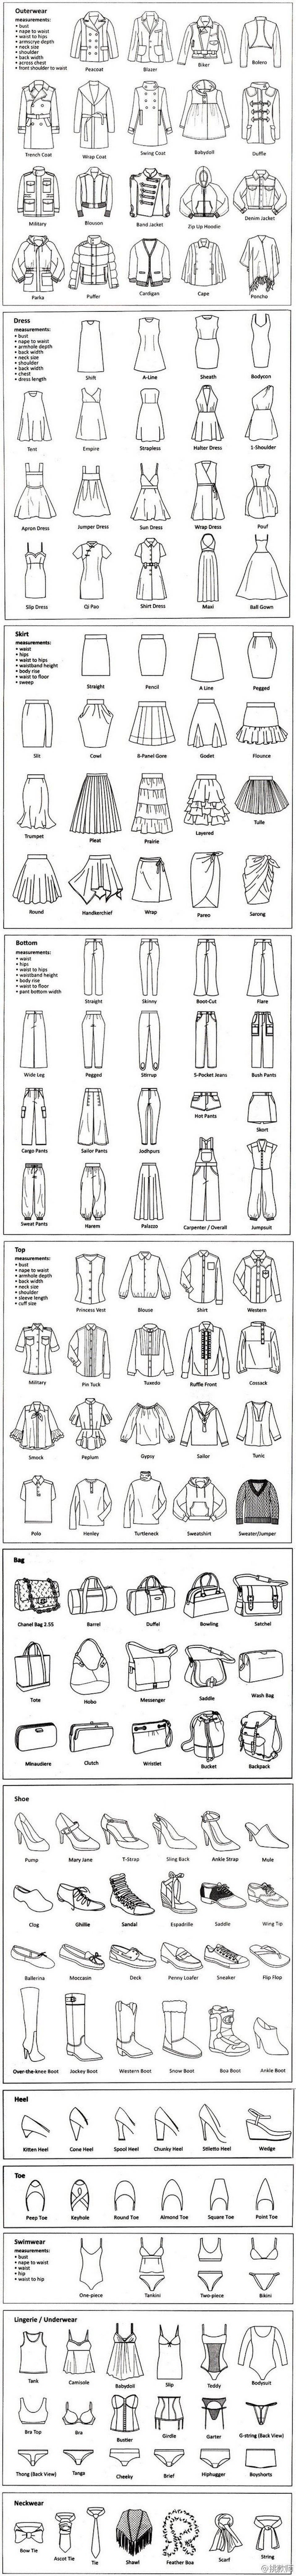 Full Fashion Vocabulary